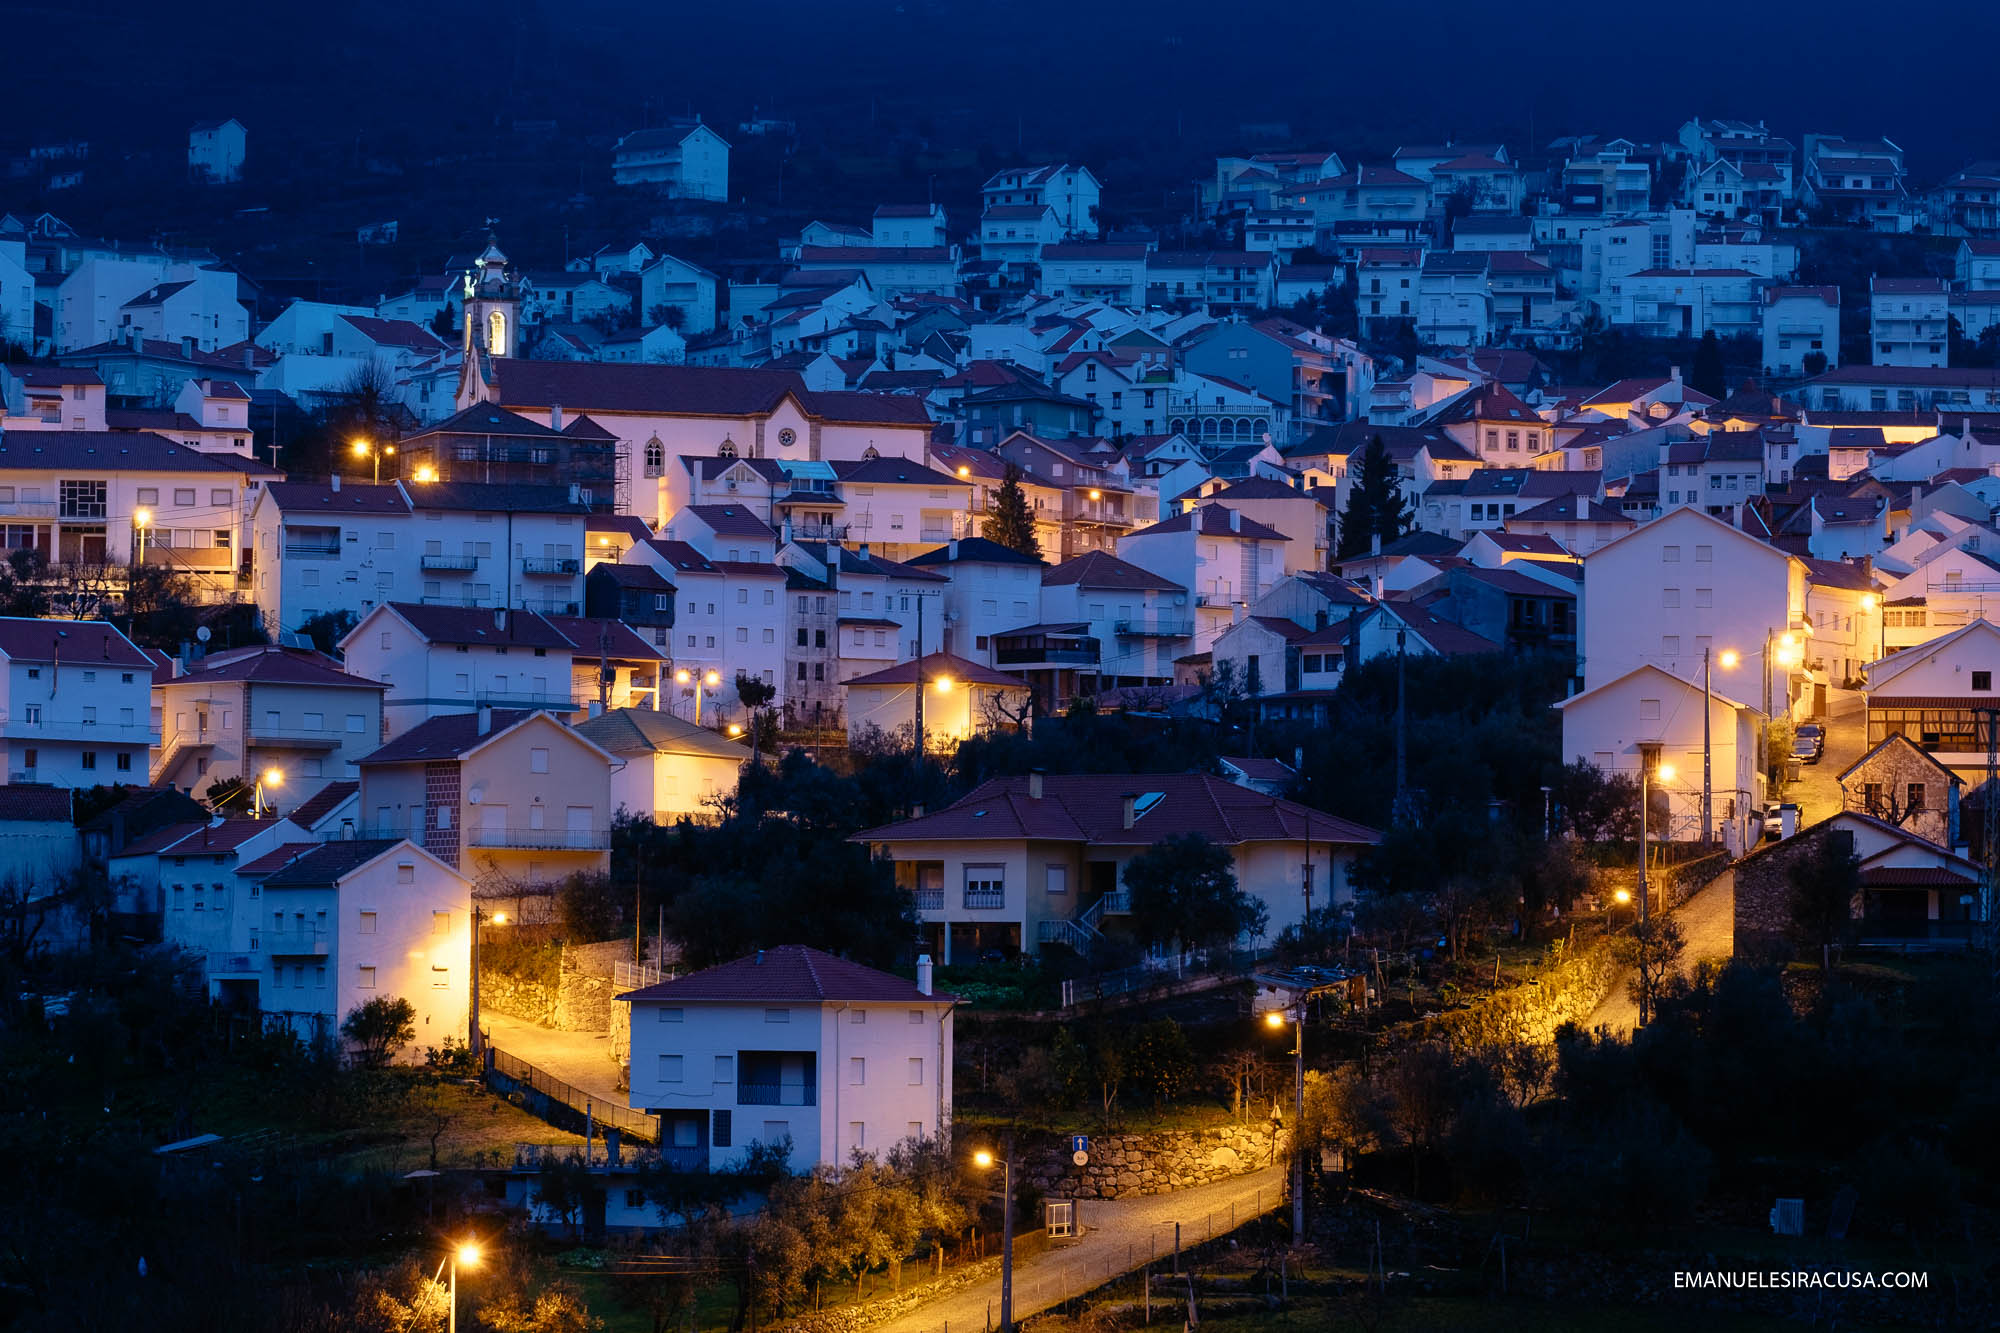 Manteigas before sunrise, as seen from the balcony of my hotel room. Located right in the hearth of the scenic Zezere river's Glacial Valley, and close to many hiking trails, Manteigas is the best gateway to Serra da Estrela.